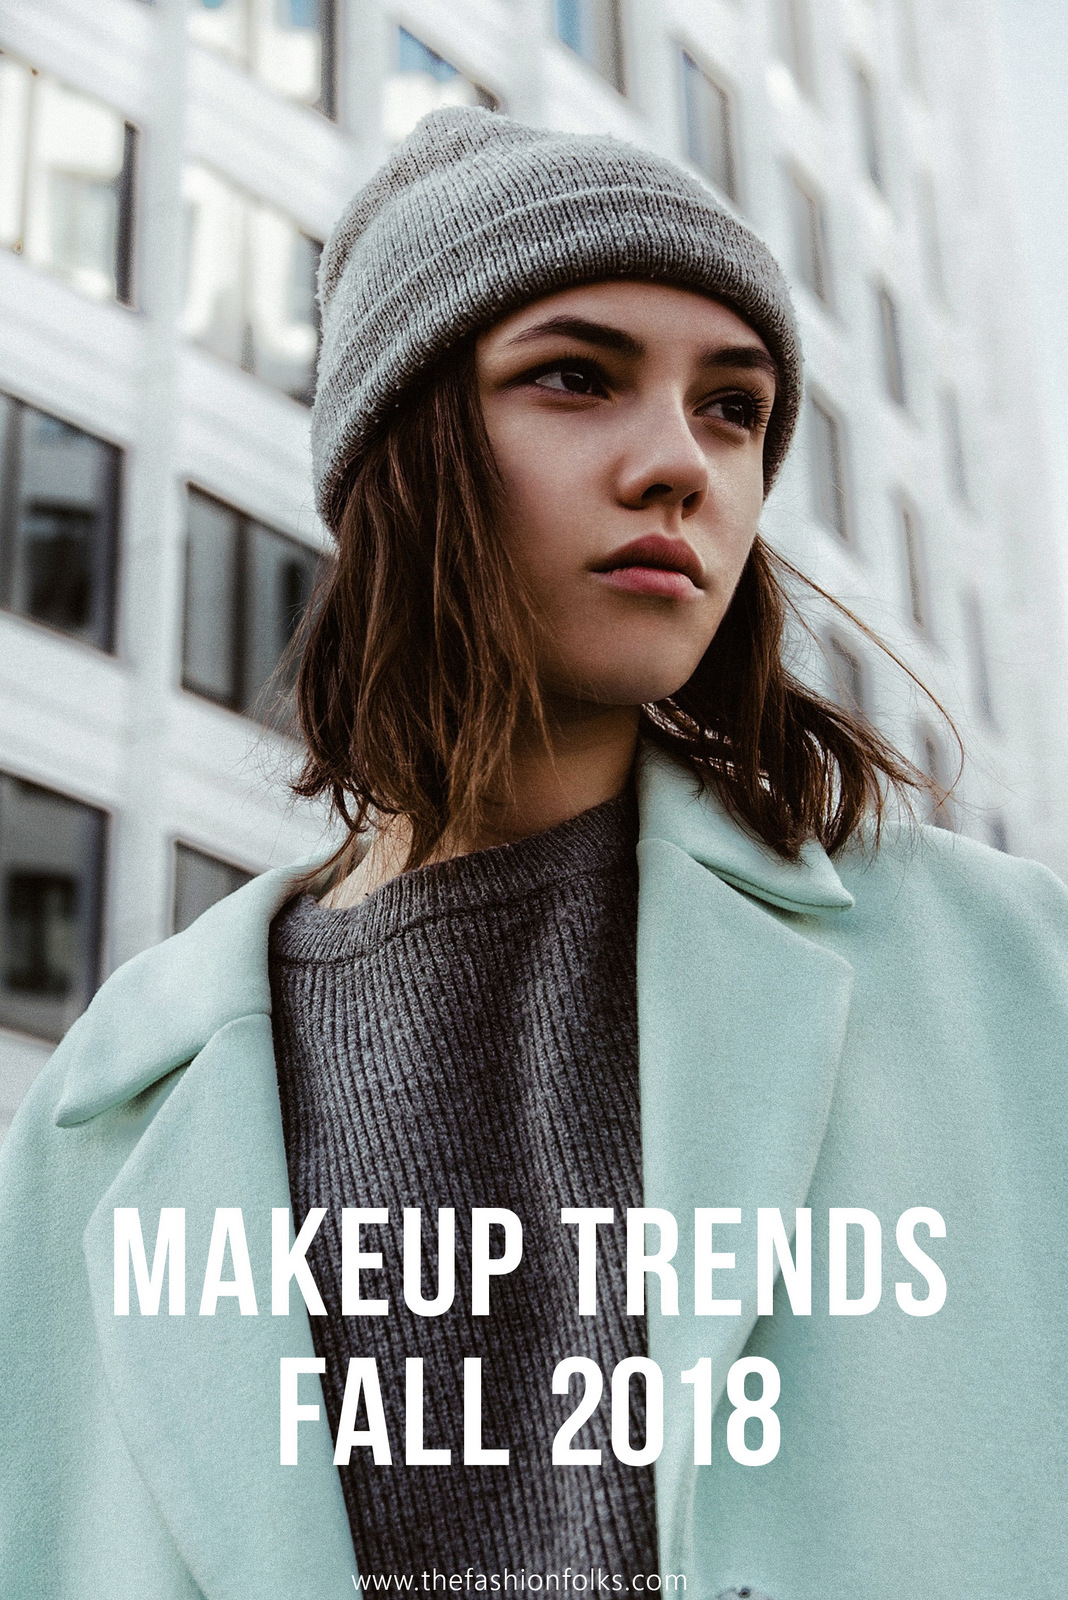 Preview: Makeup Trends Fall 2018